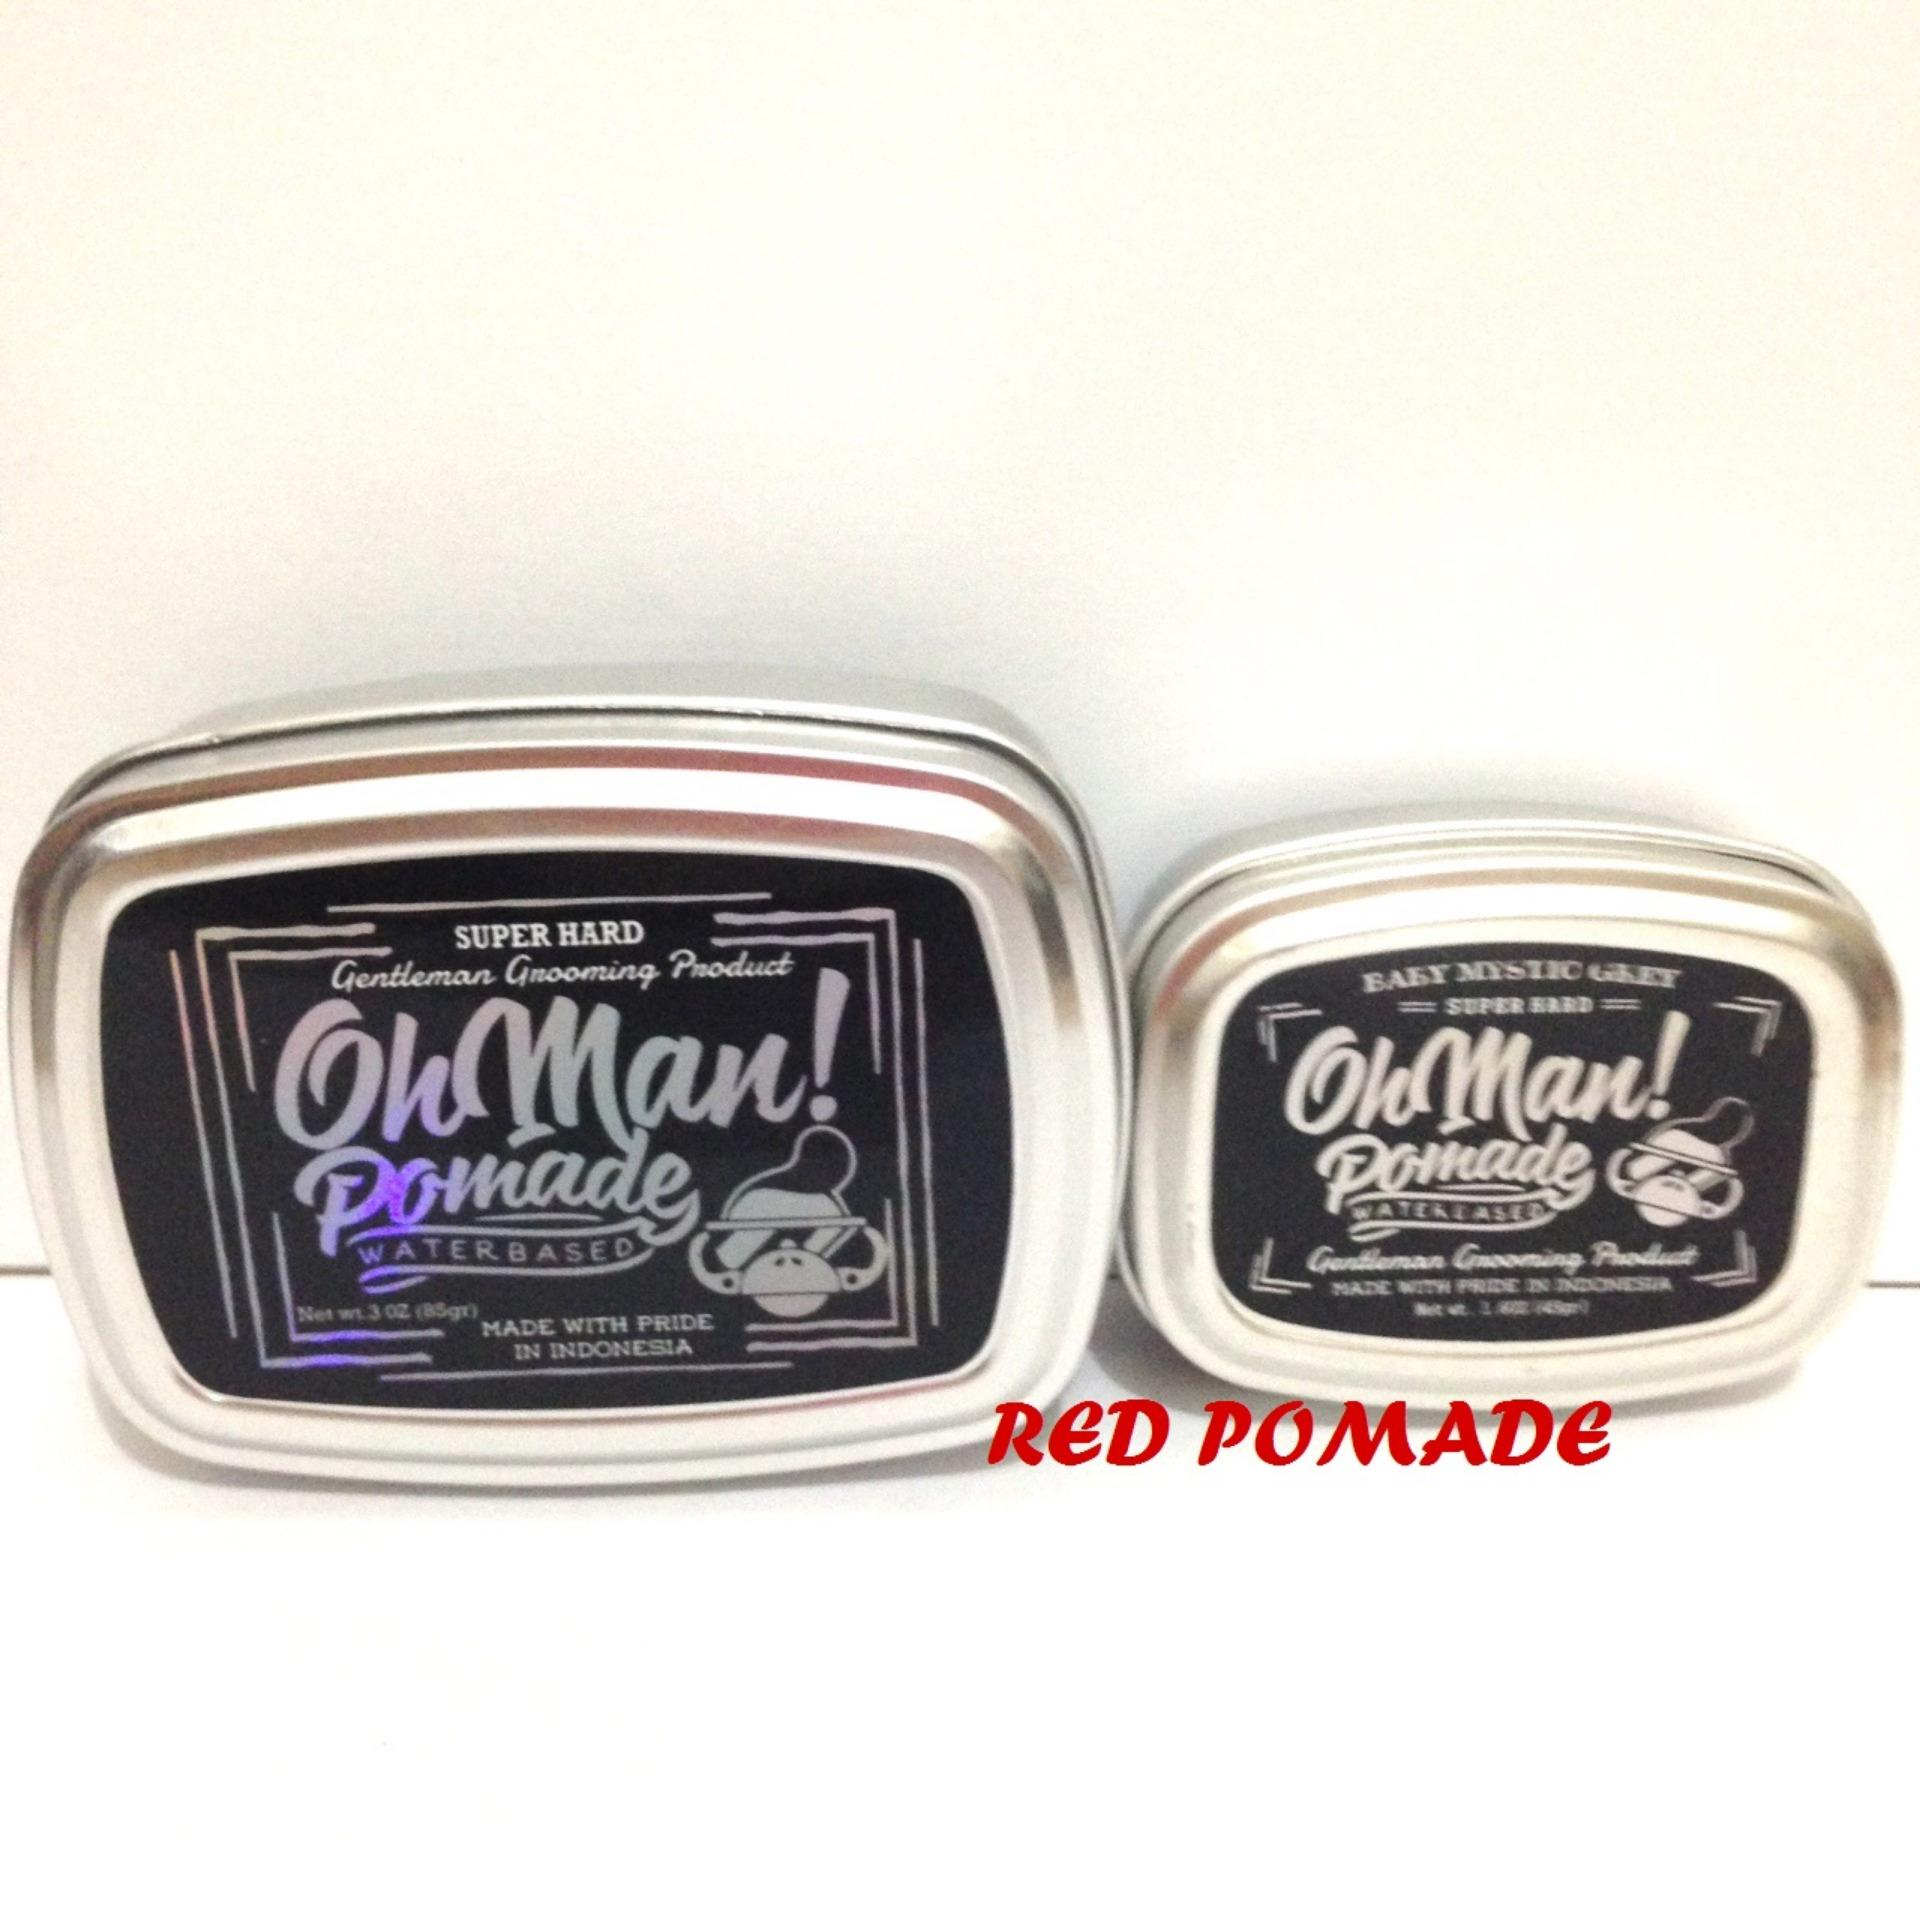 POMADE OH MAN! OHMAN BABY MYSTIC GREY MINI SIZE 45 GRAM HEAVY WATERBASED WATER BASED ...